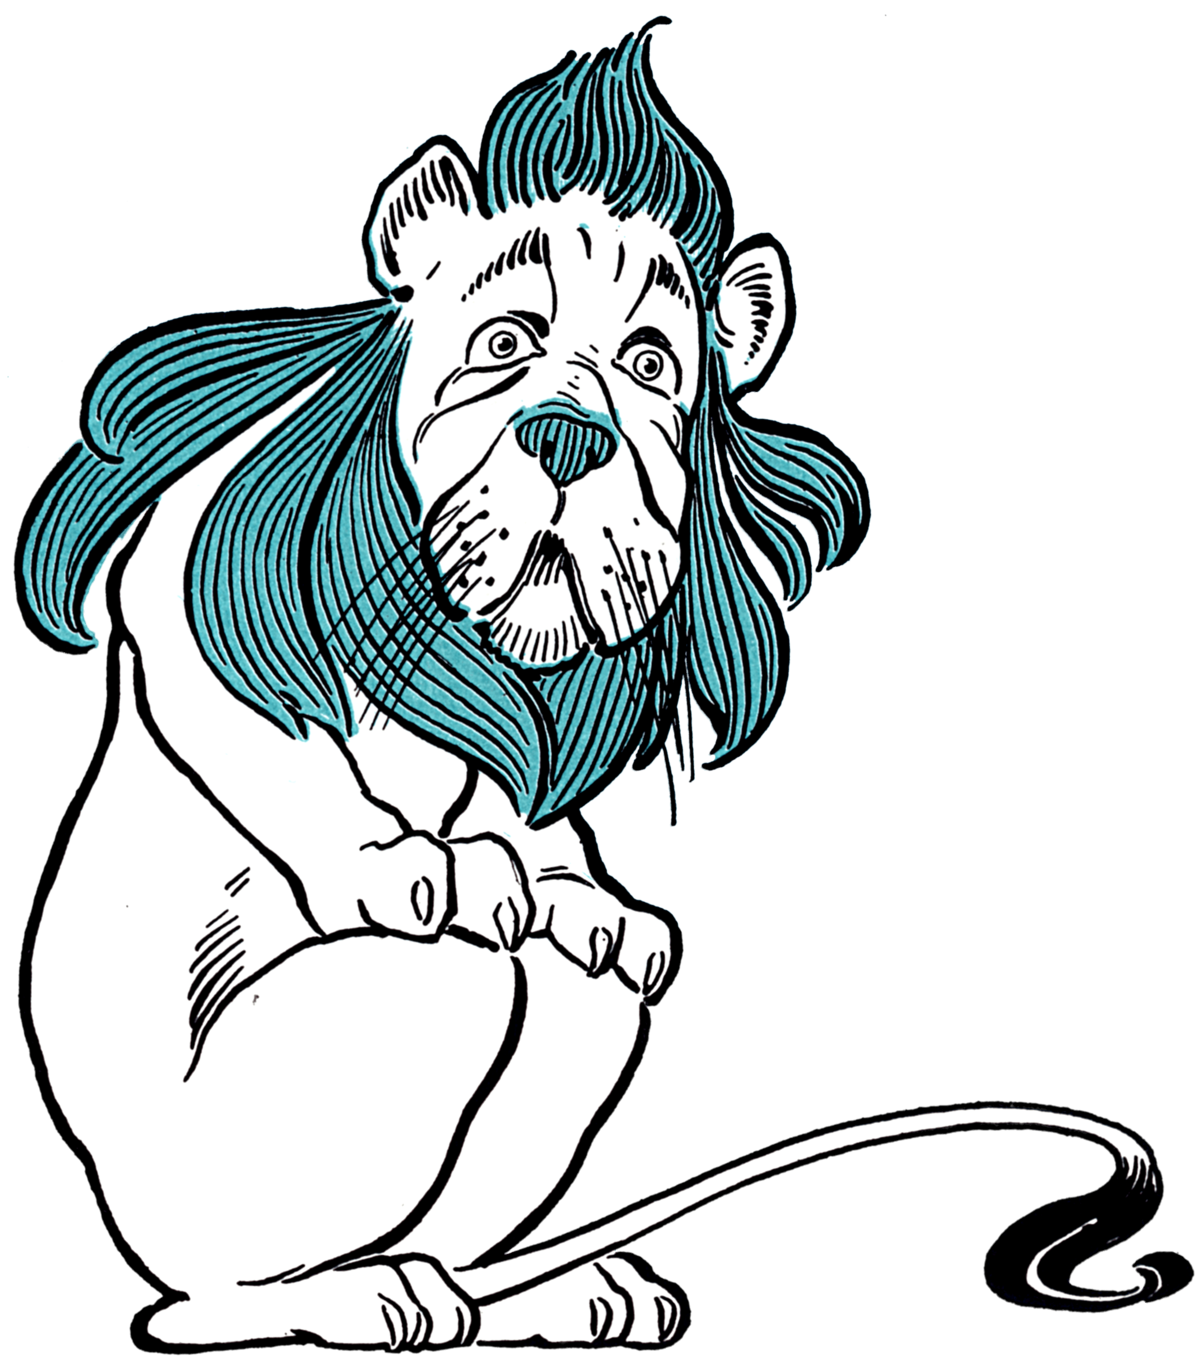 Witch clipart wizard oz. Cowardly lion wikipedia